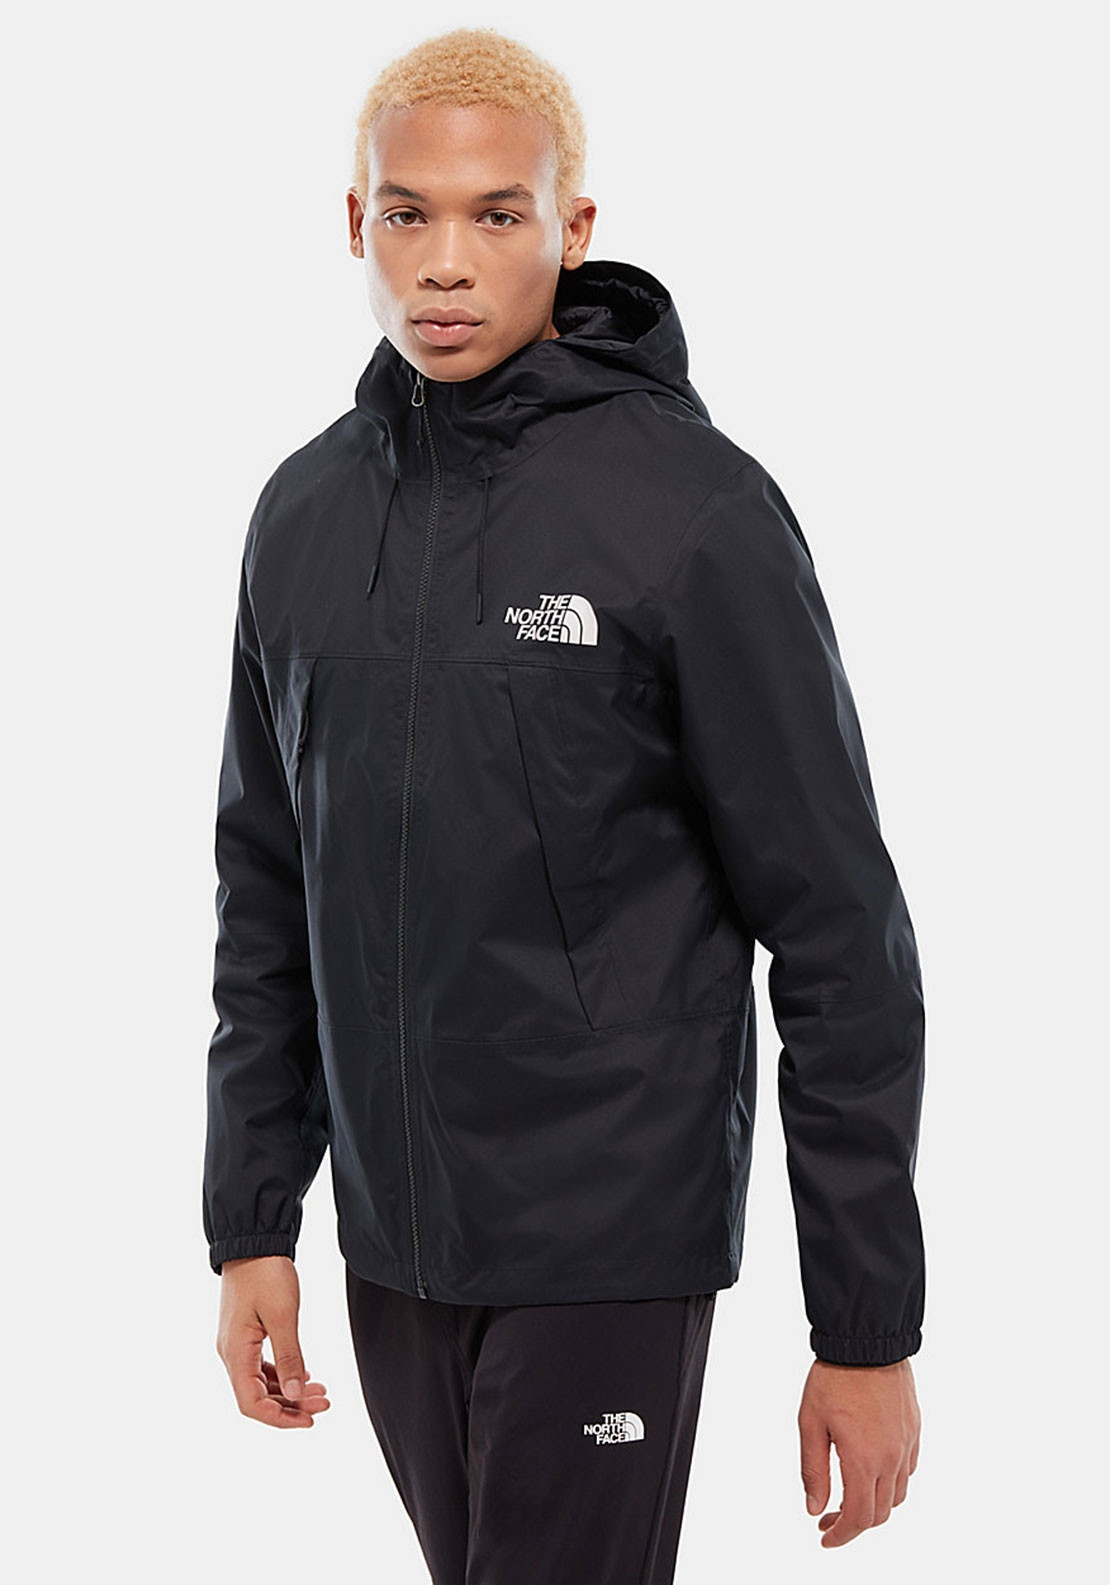 The North Face 1990 Mountain Q Jacket, Black